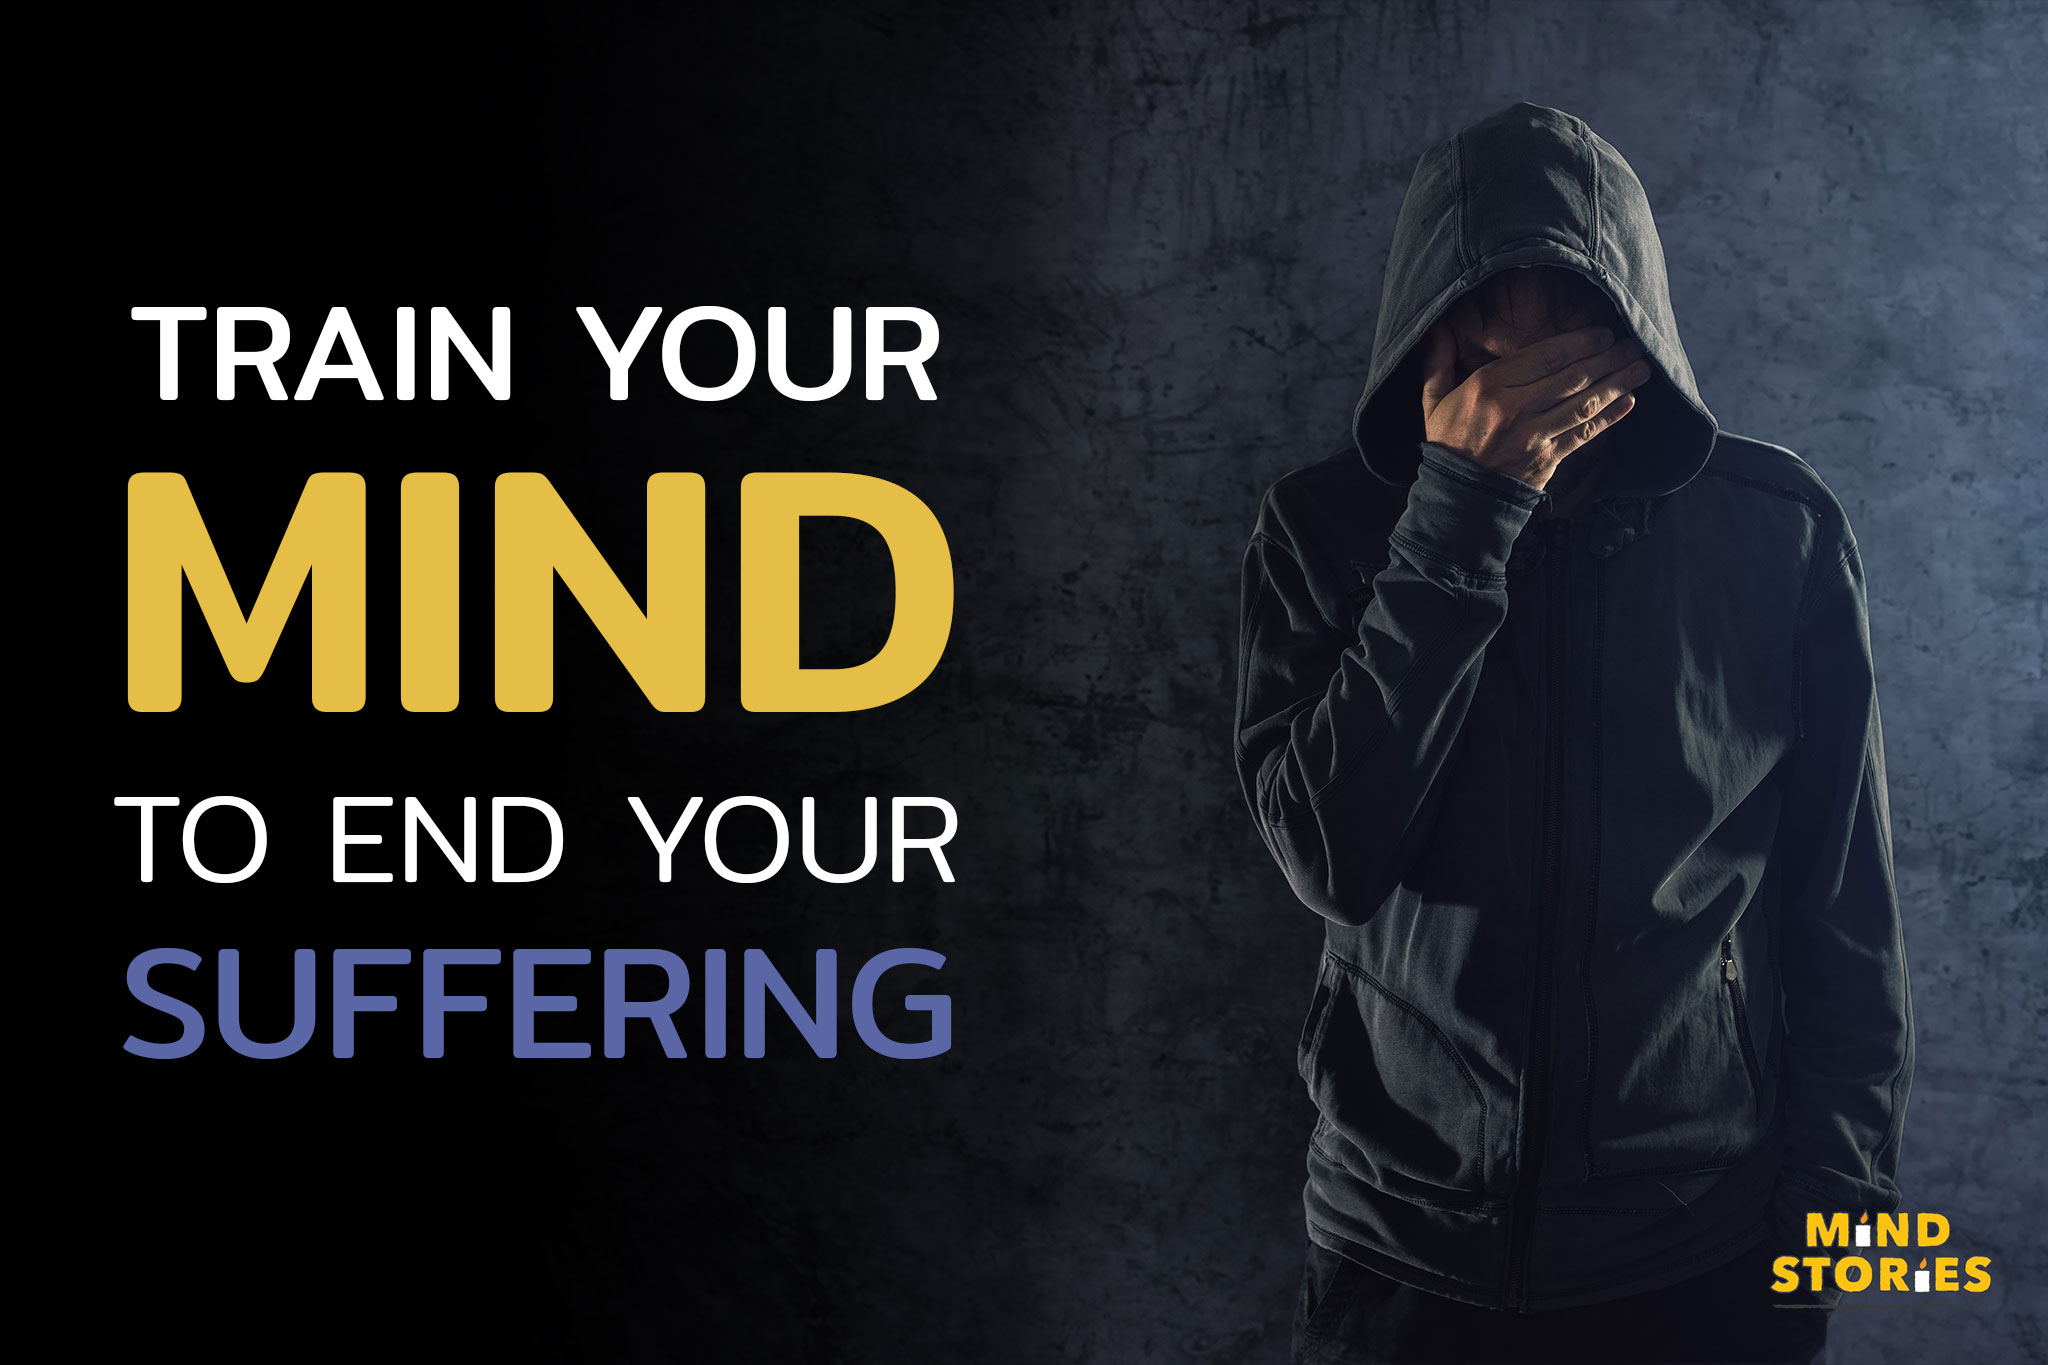 Train your mind to end your suffering